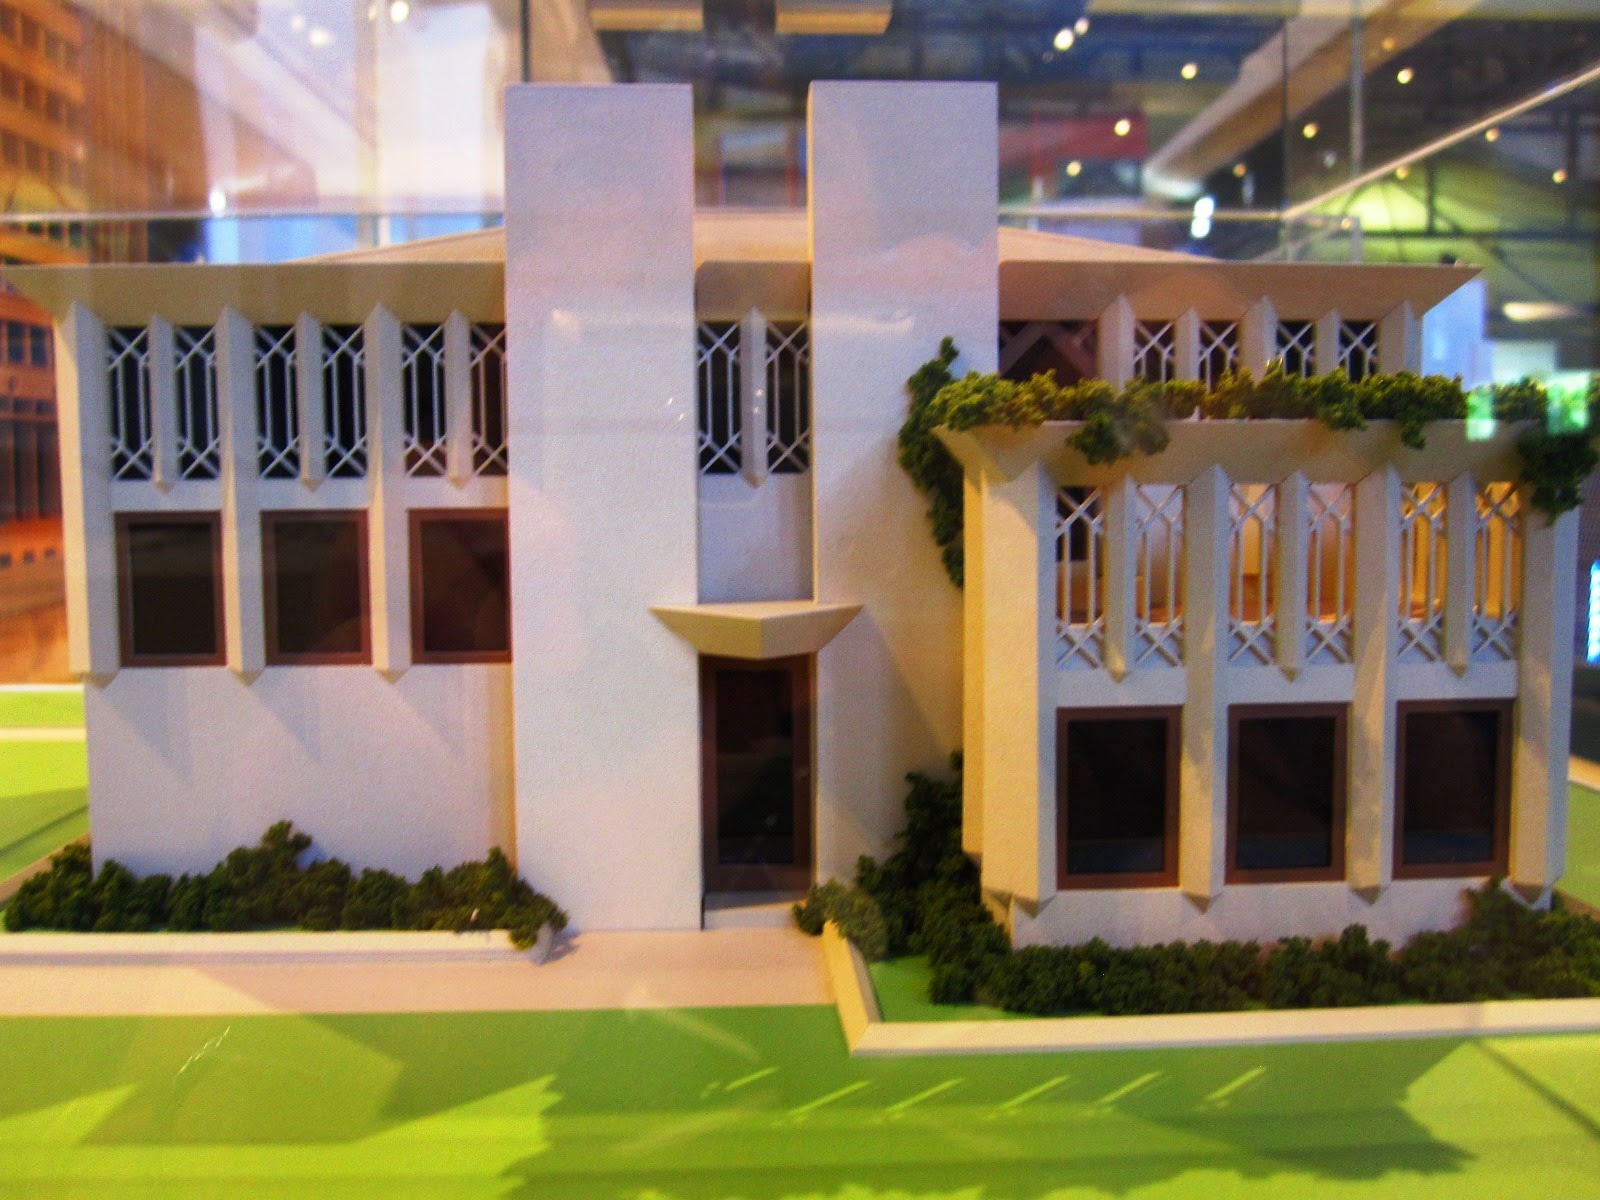 Model of 'Own house', designed by Walter Burley and Marion Mahony Griffin.